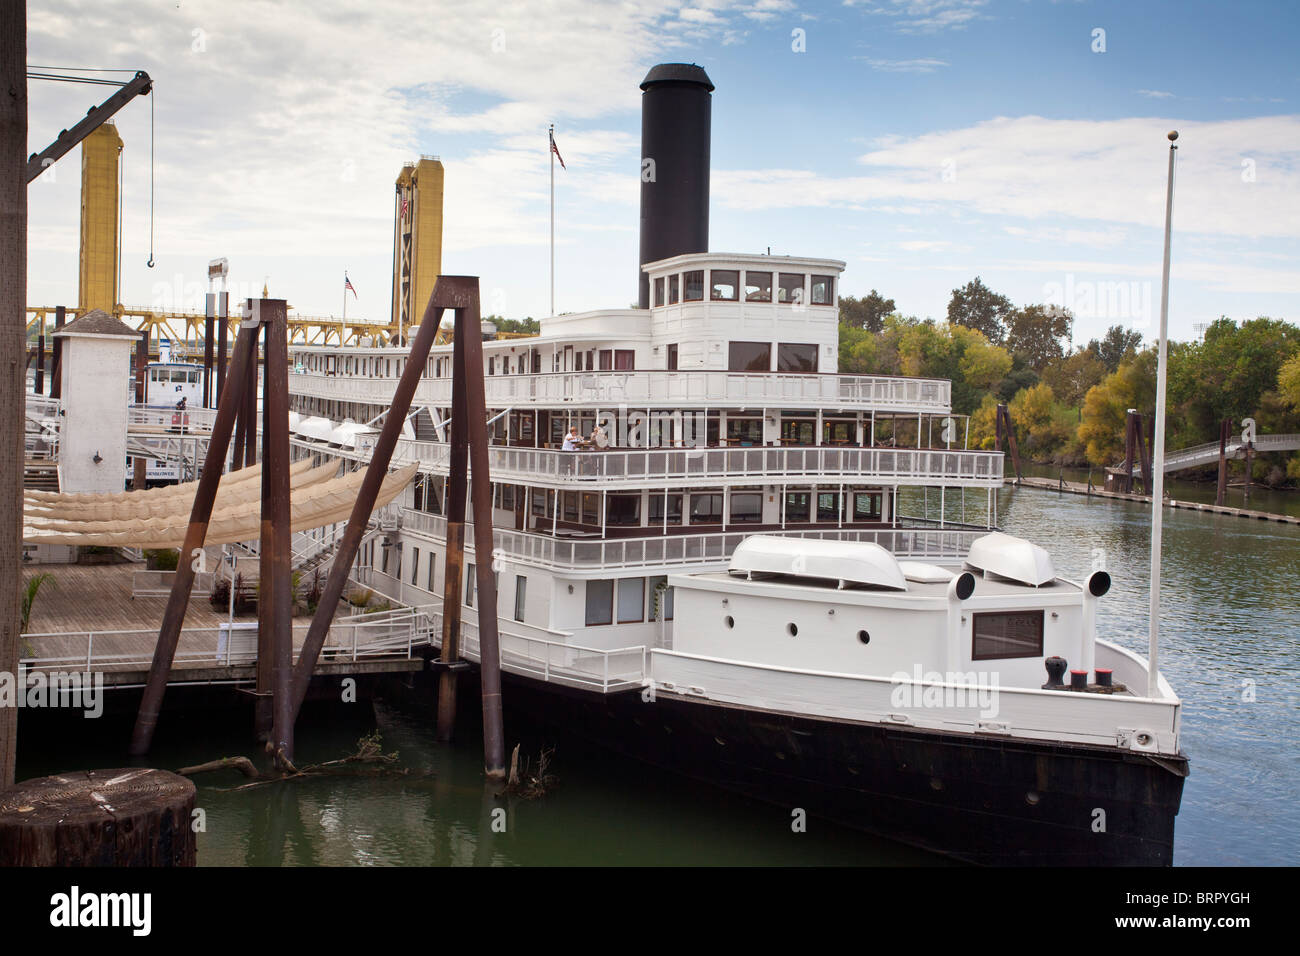 The Delta King Restaurant and Hotel at Old Town Sacramento California - Stock Image